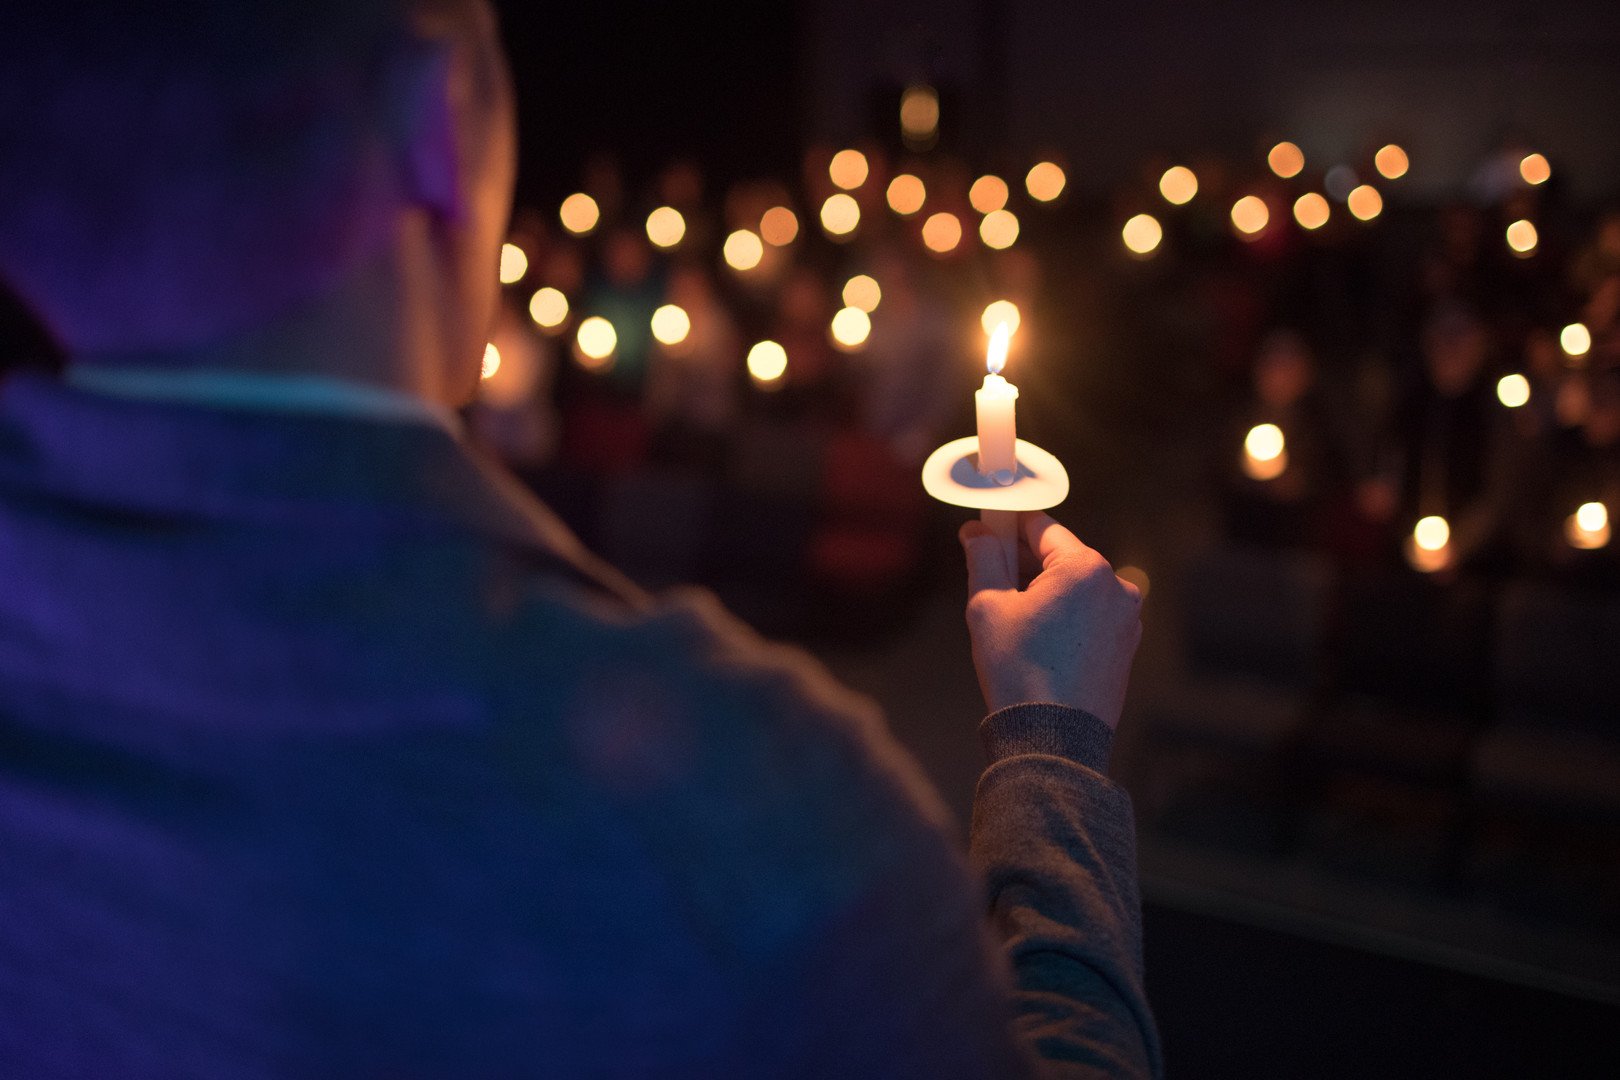 ChristmasStockPhotography_Candlelight2.j